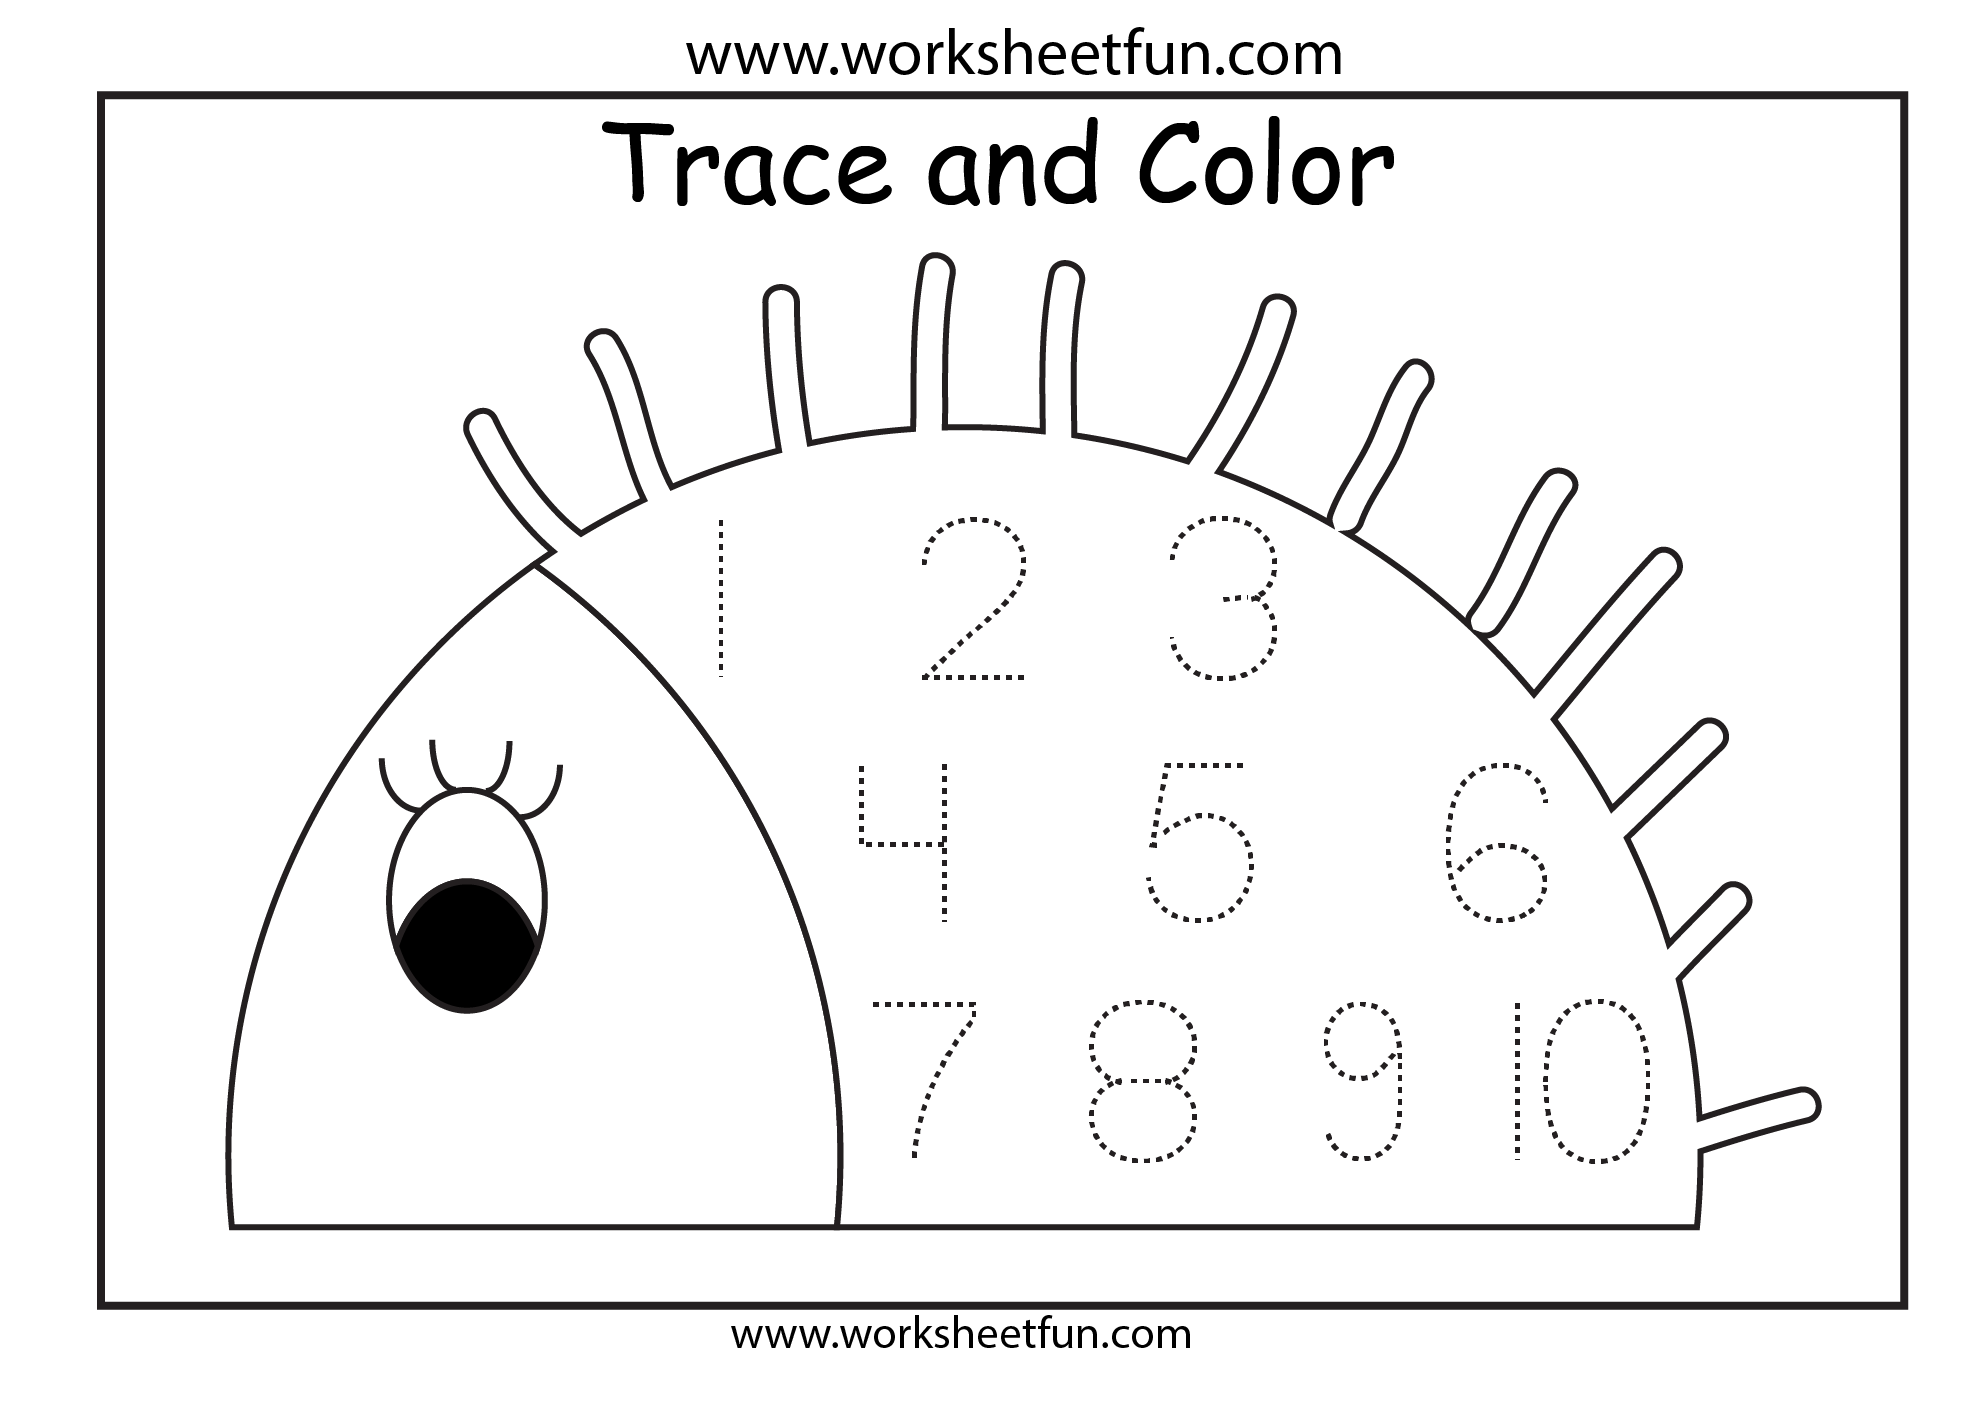 Number Tracing 1 Worksheet Free Printable Worksheets Worksheetfun